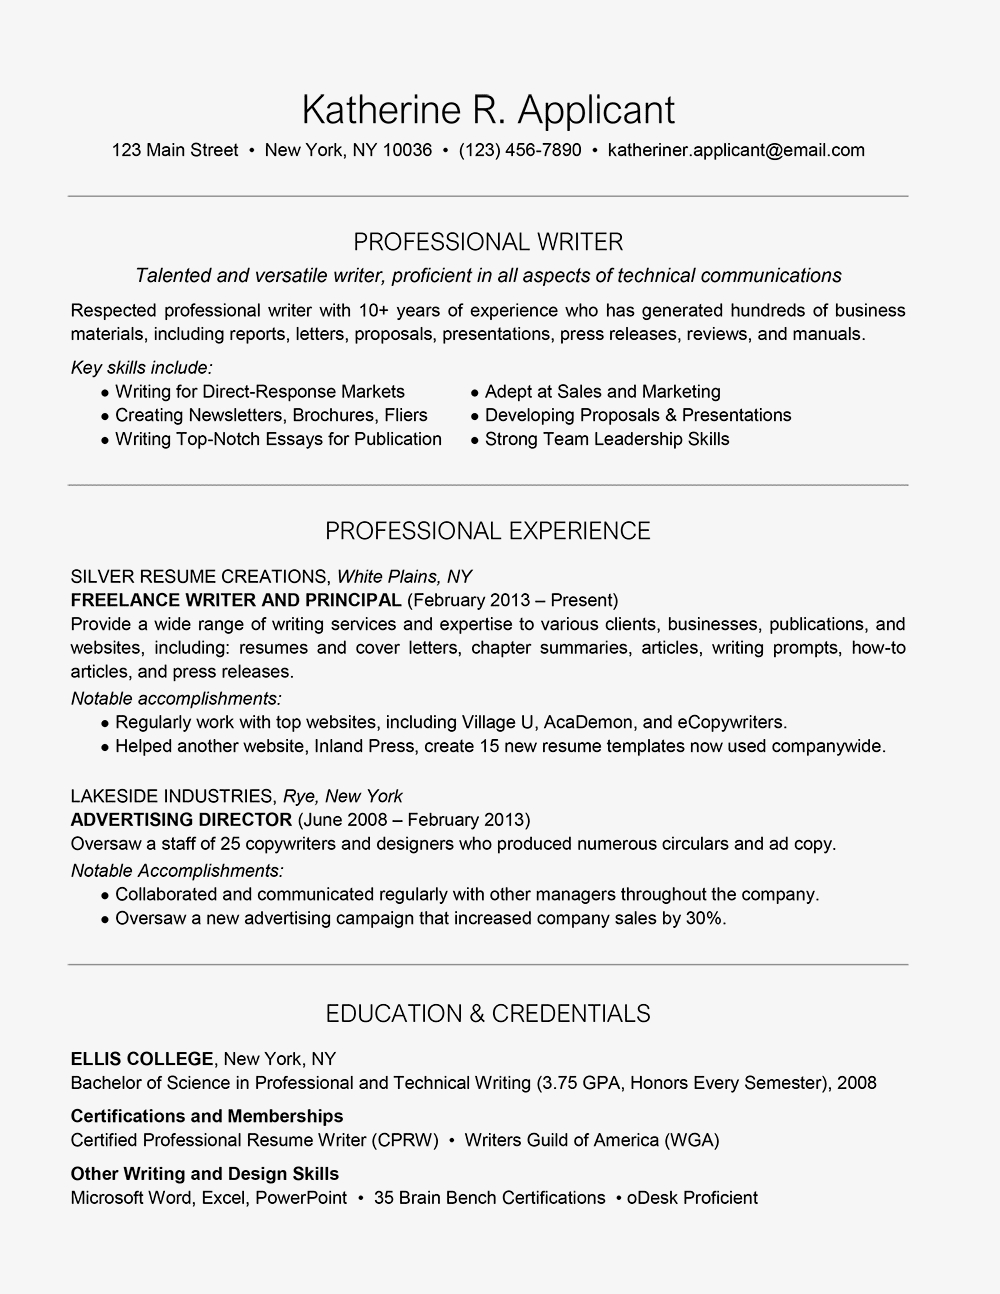 Direct Care Professional Job Duties - Professional Writer Resume Example and Writing Tips